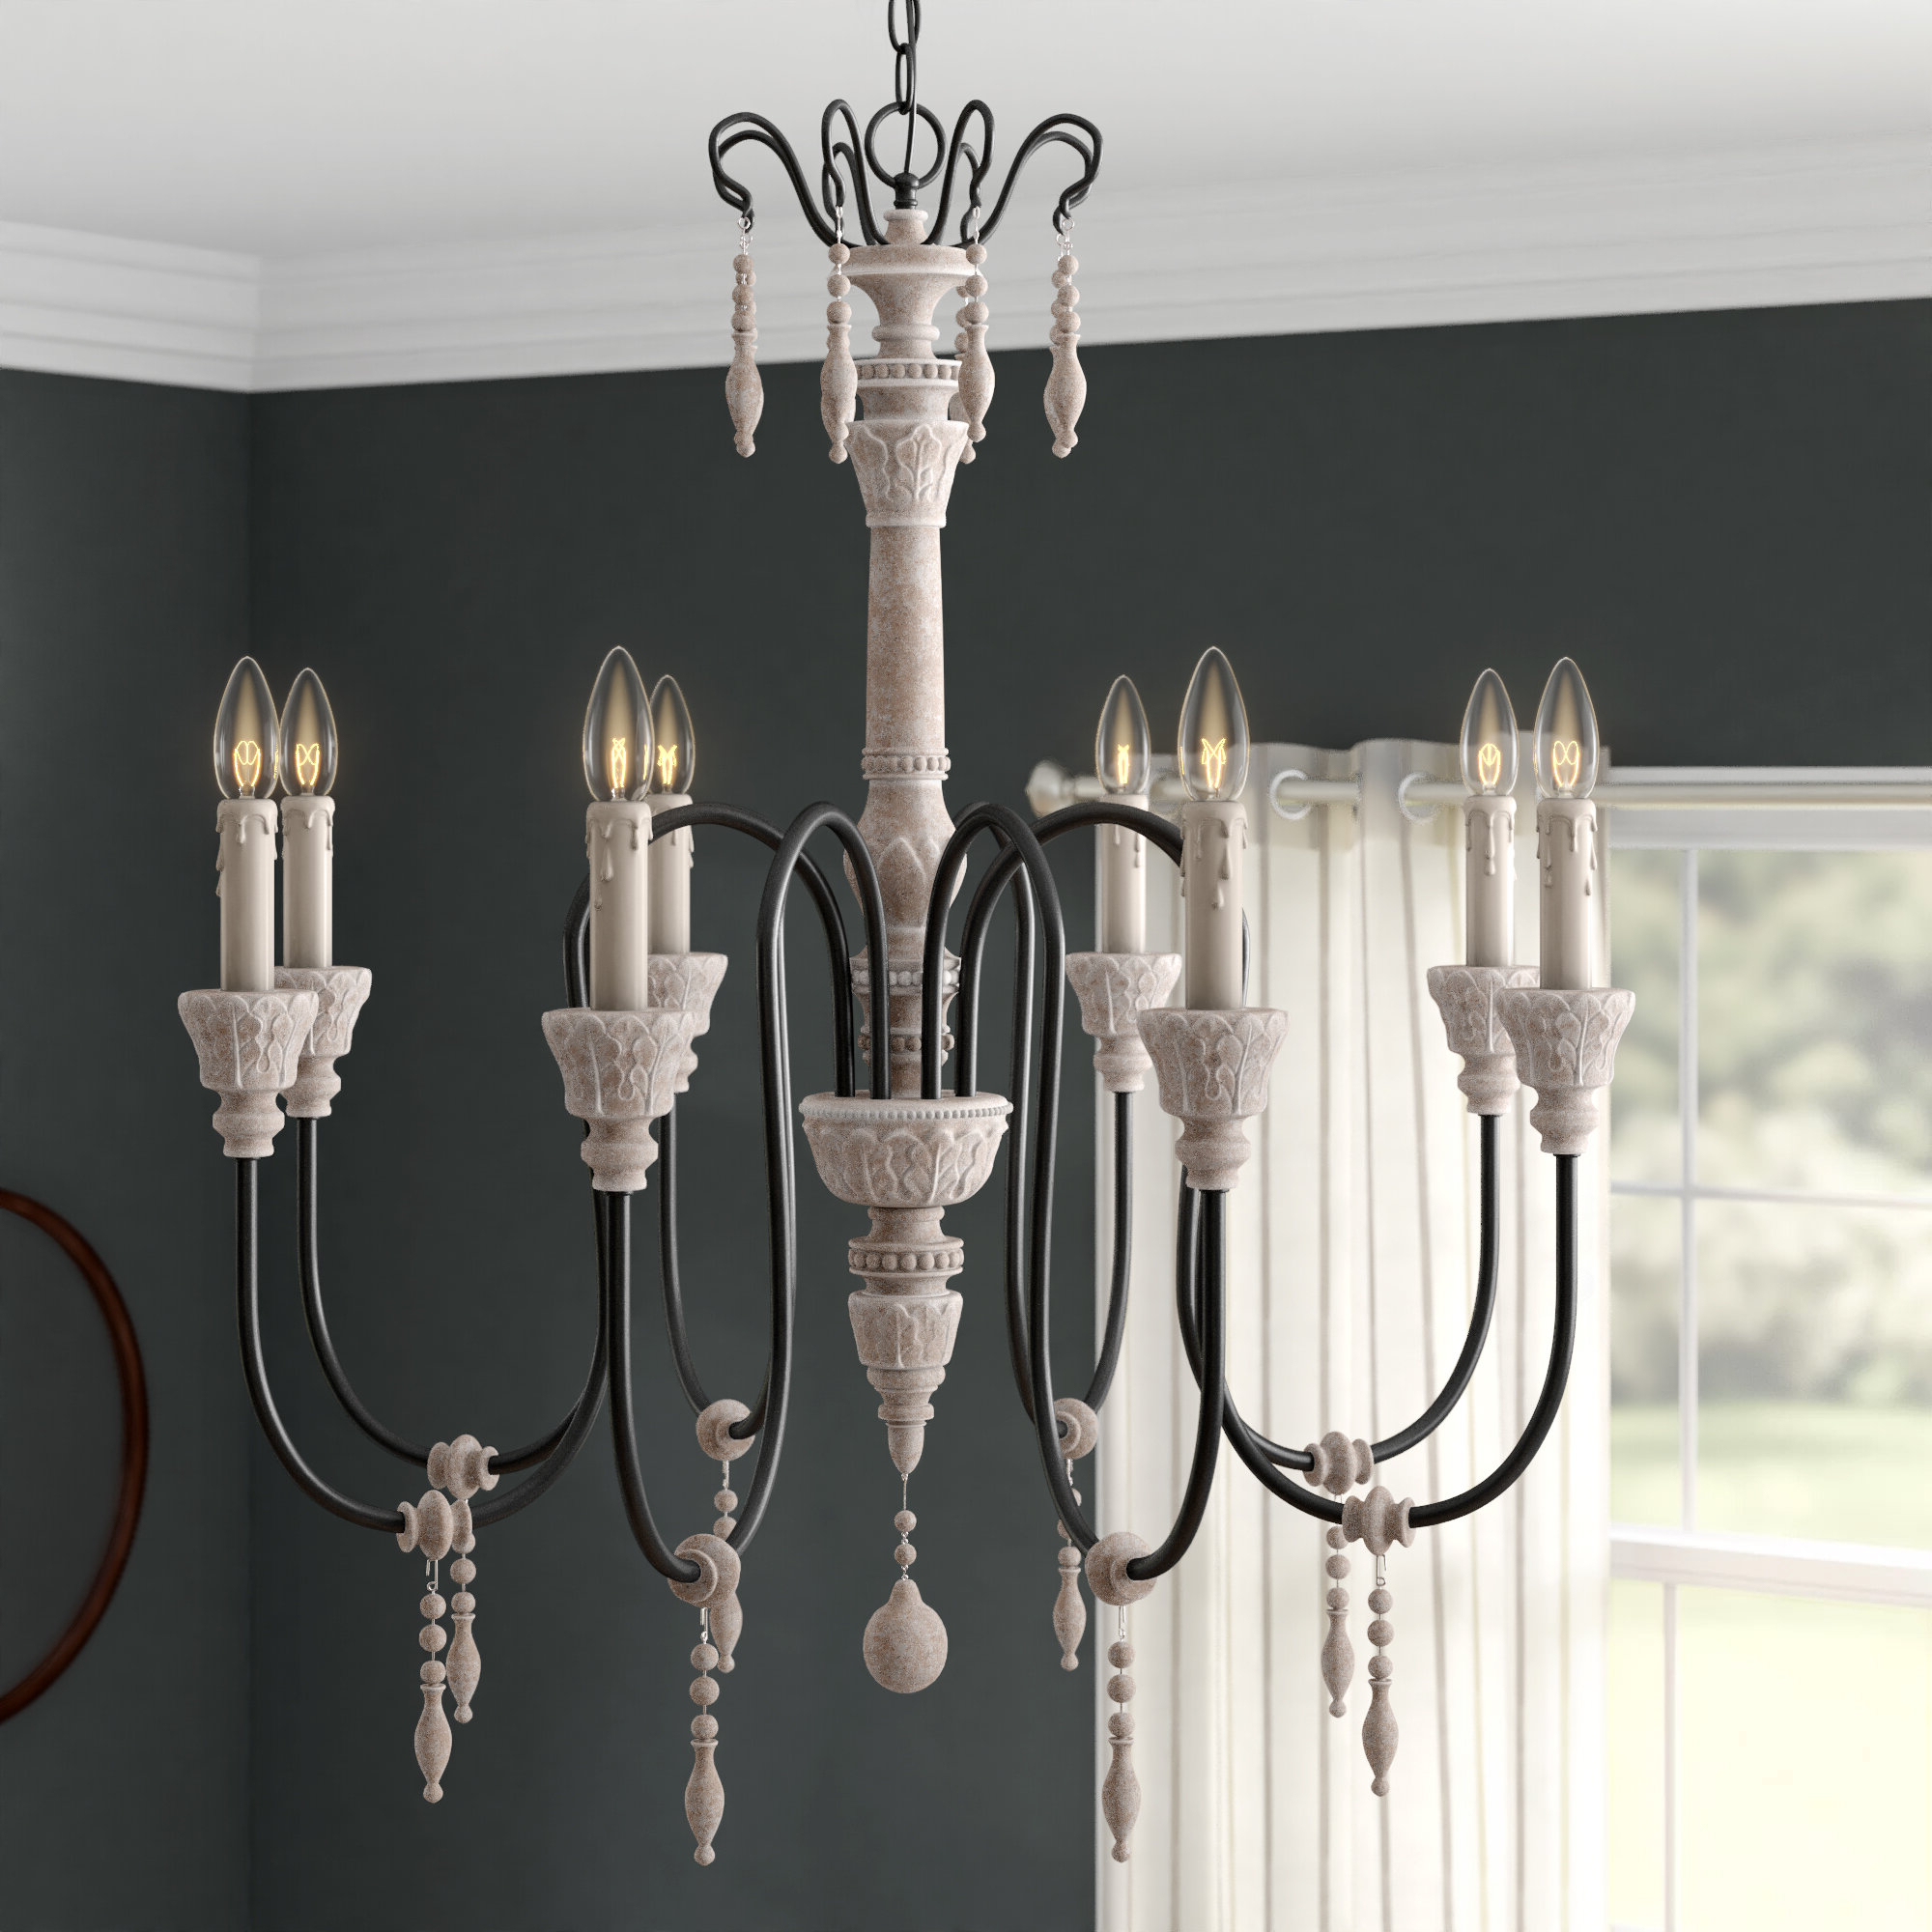 Ailsa 8 Light Candle Style Chandelier Pertaining To Recent Armande Candle Style Chandeliers (View 4 of 25)